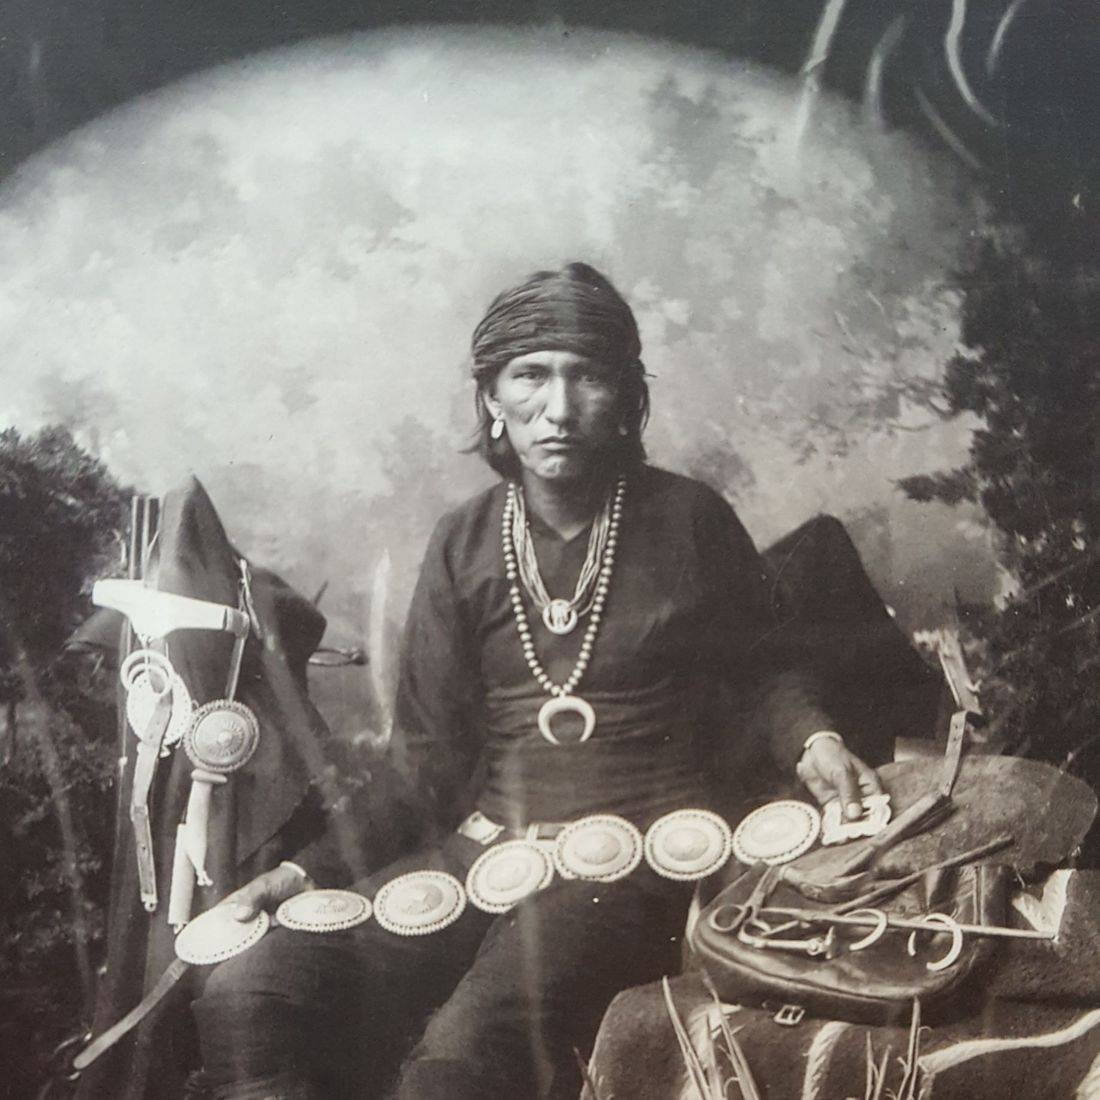 Slender Maker of Silver- Navaho's earliest Silversmith